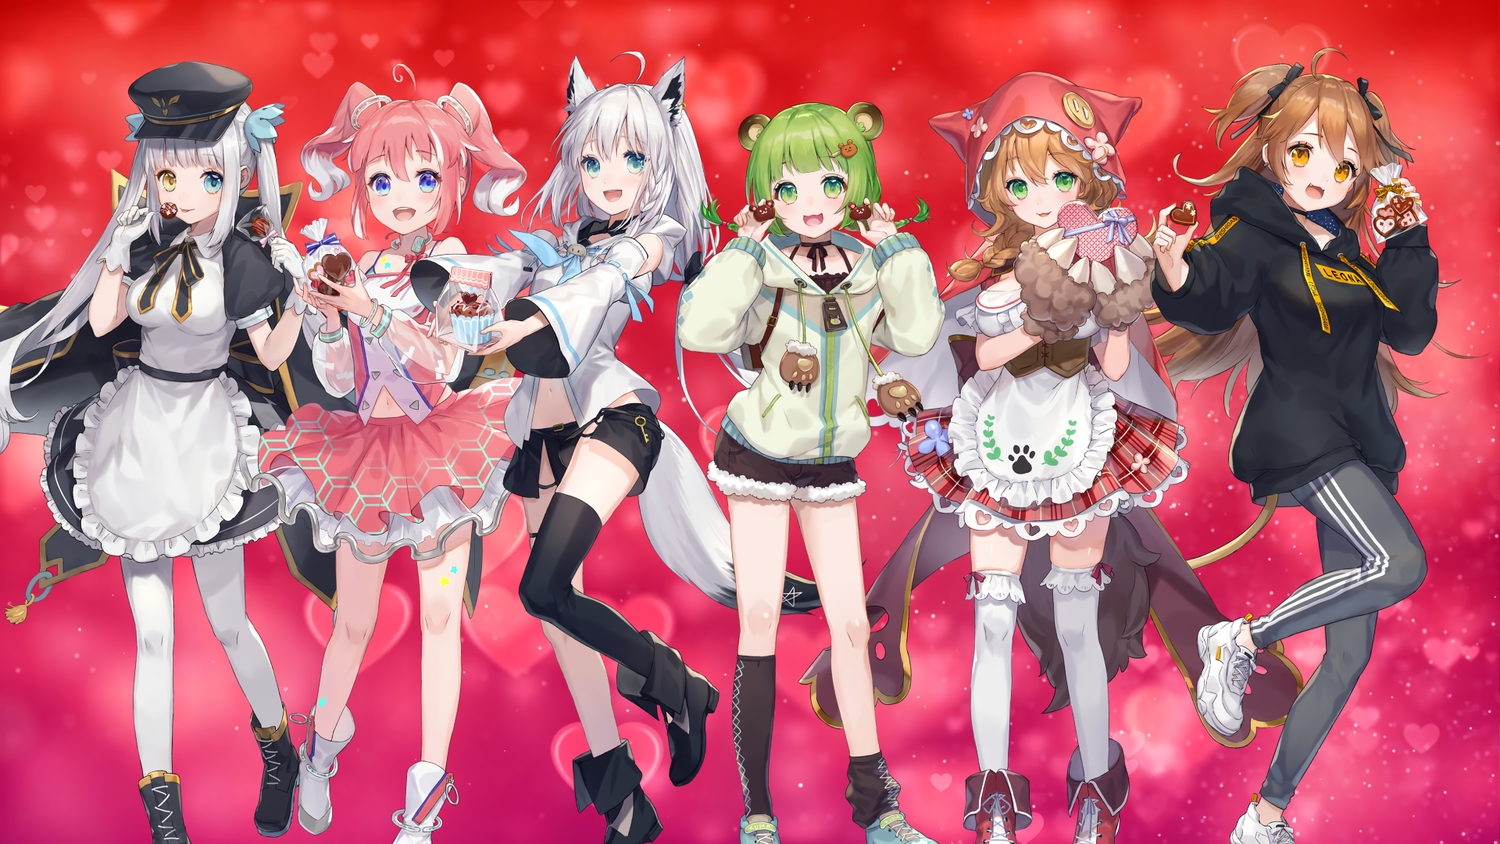 animal_ears apron bicolored_eyes blue_eyes boots brown_hair candy cape cat_smile chocolate choker fang gloves gradient green_eyes green_hair hat hinokuma_ran hololive hoodie kagura_mea kagura_mea_channel long_hair navel nijisanji orange_eyes pantyhose pink_hair school_uniform shirakami_fubuki shorts skirt tagme_(character) tail twintails warabeda_meijii wolfgirl ymymssy zettai_ryouiki